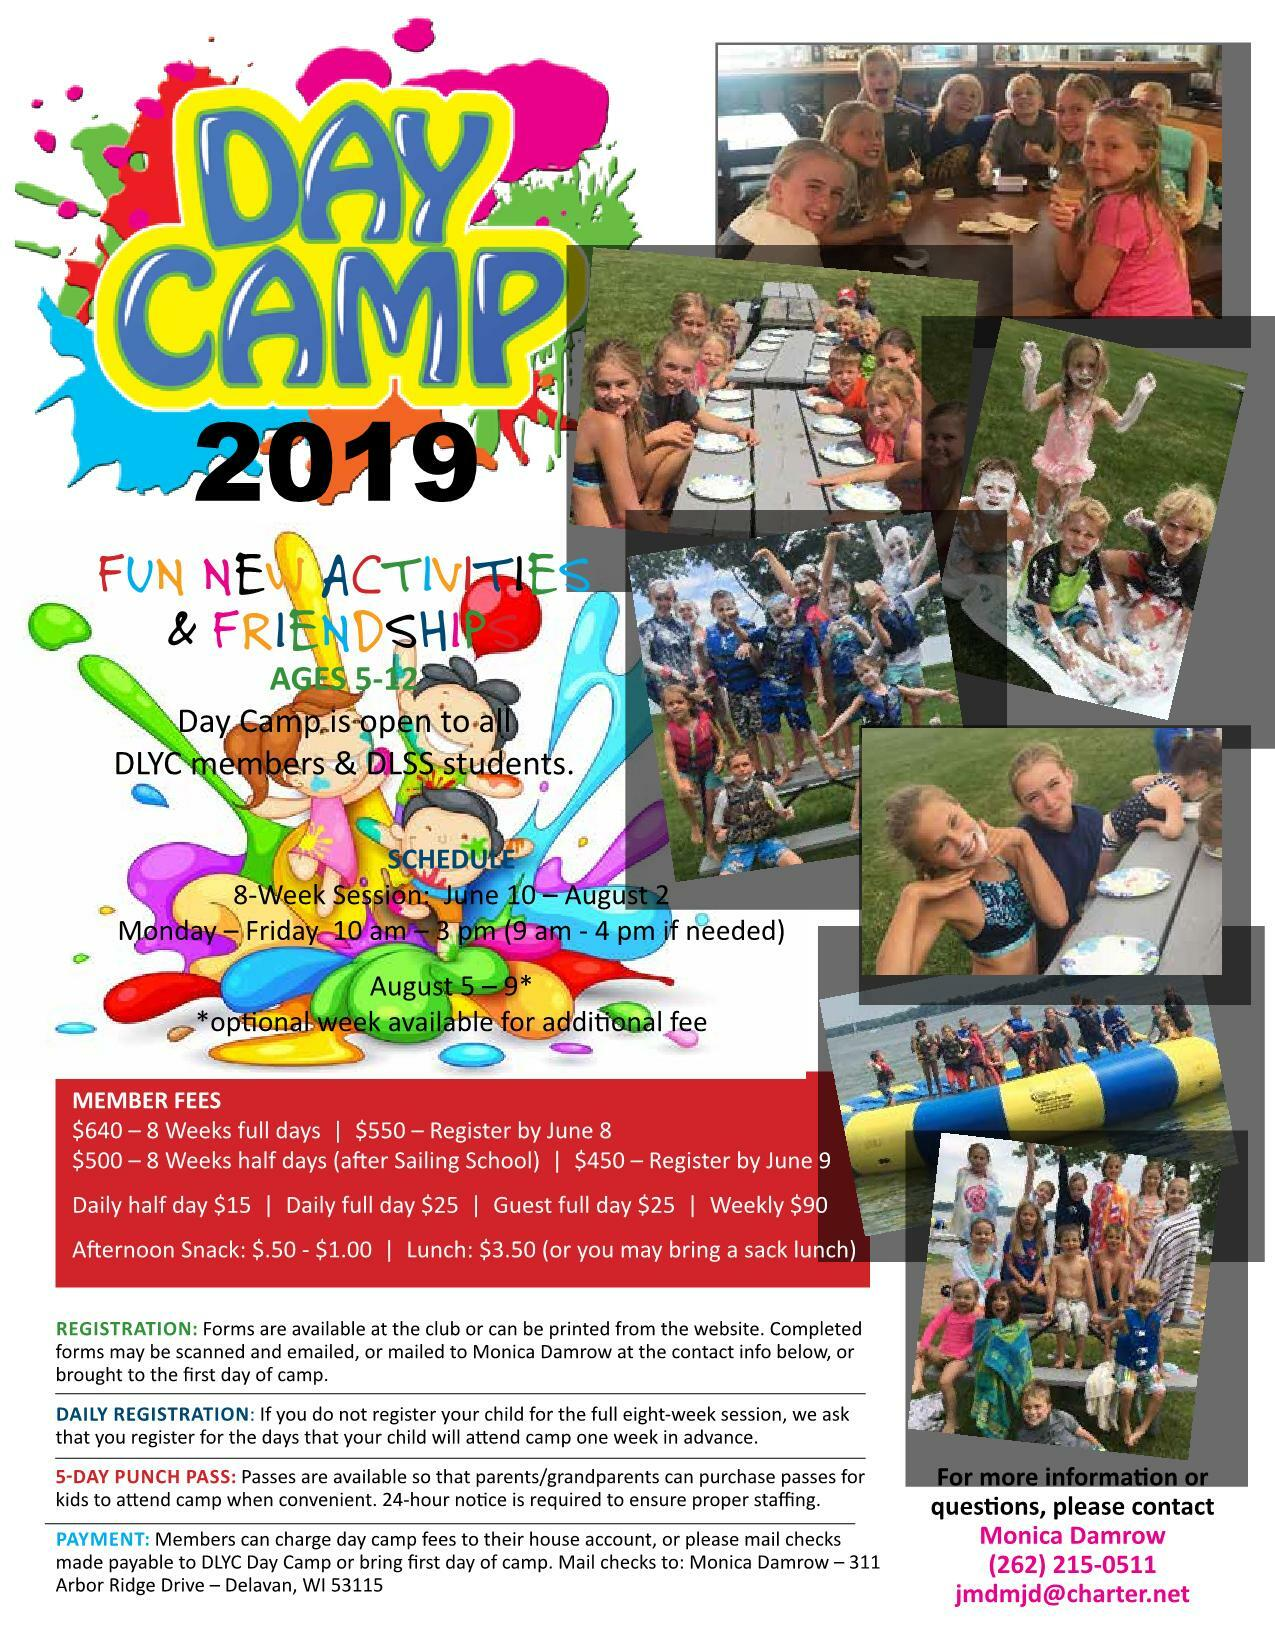 Day Camp 2019